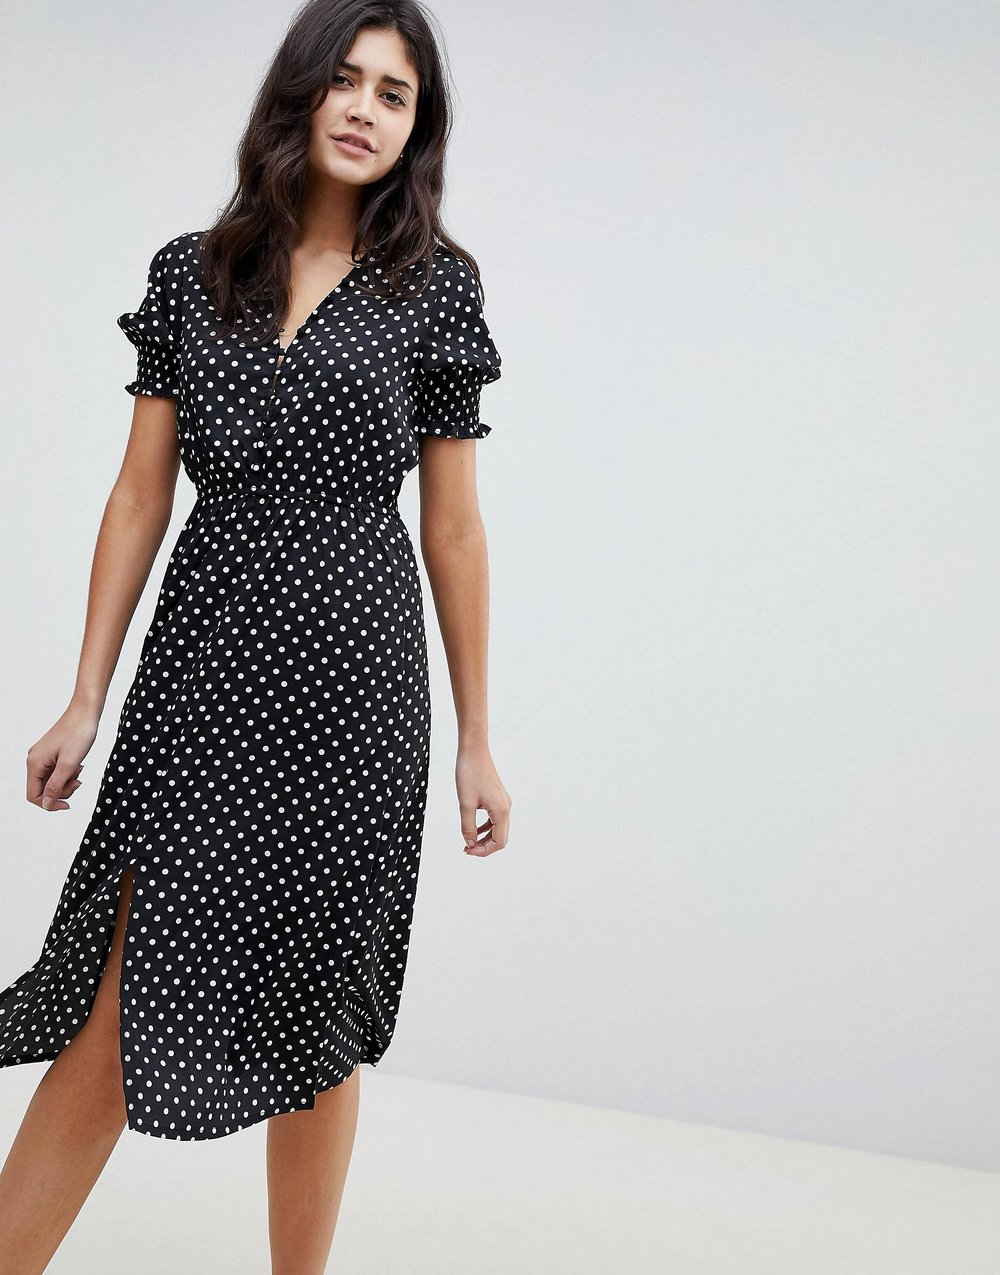 Midi dress, Influence, $38.  Find it  here .